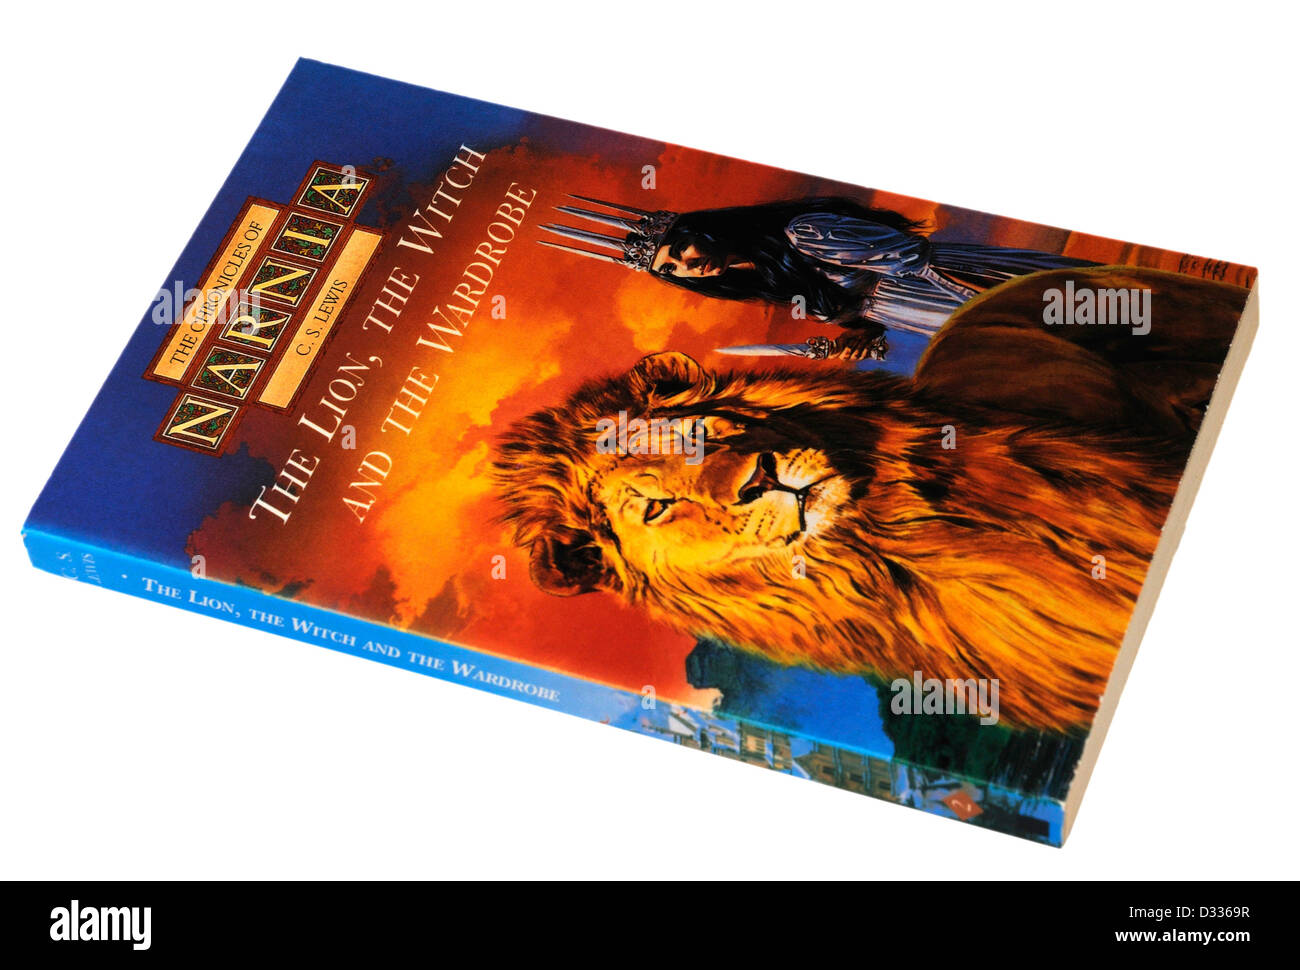 Book And Witch Imágenes De Stock & Book And Witch Fotos De Stock - Alamy